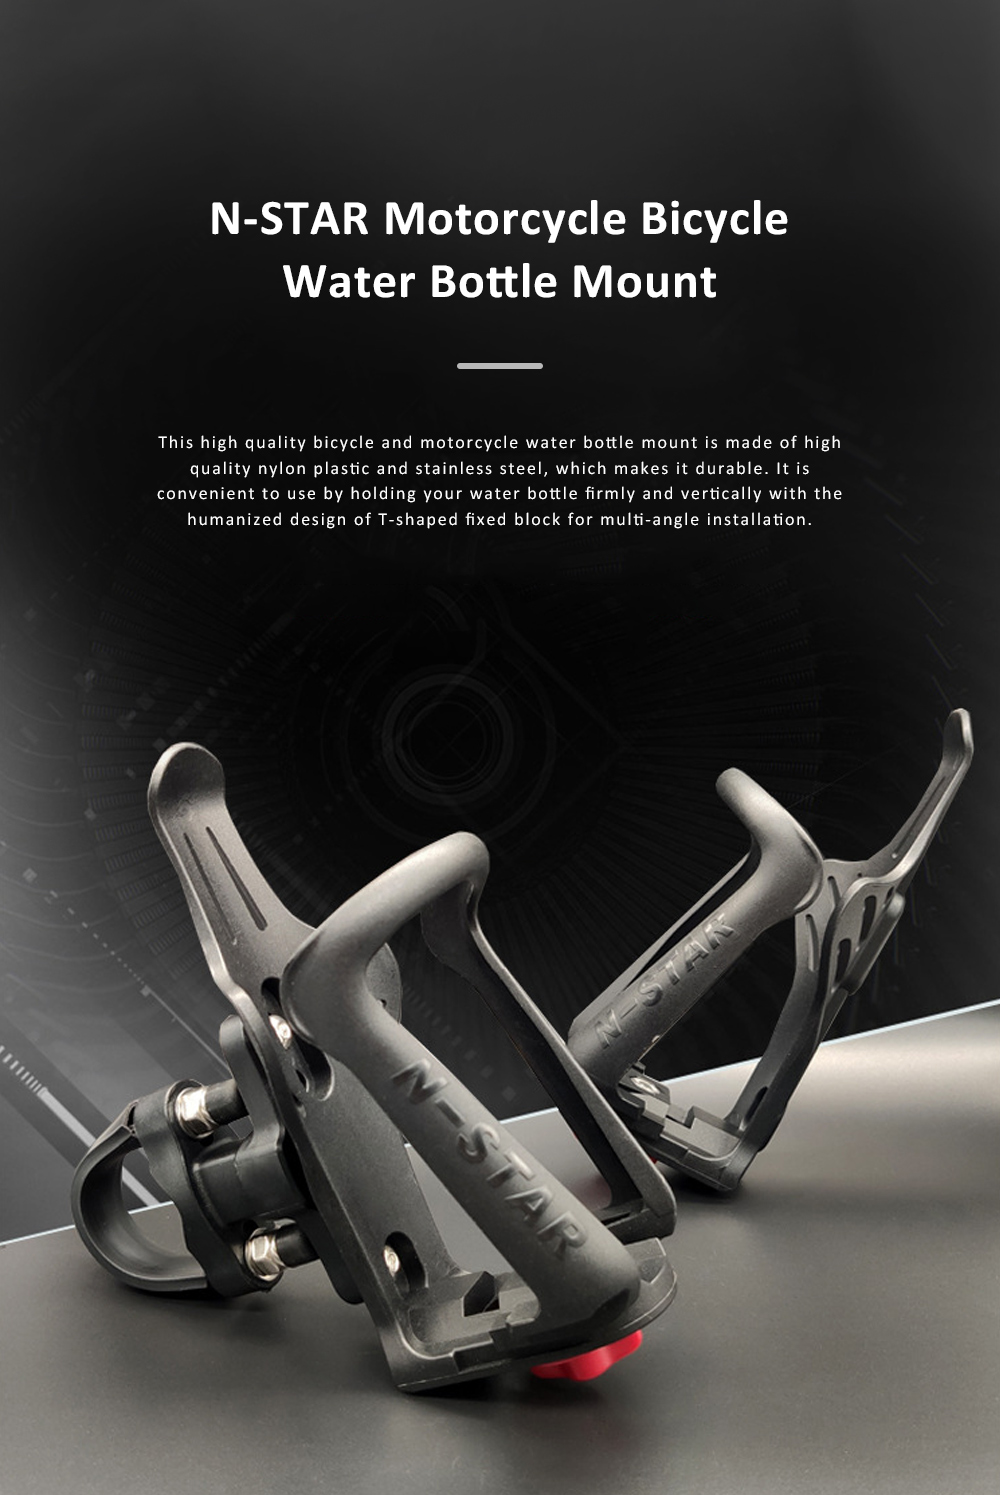 N-STAR Bicycle Water Bottle Mount Motorcycle Water Bottle Holder Brackets with Adjustable Size for Safe Outdoor Activities 0